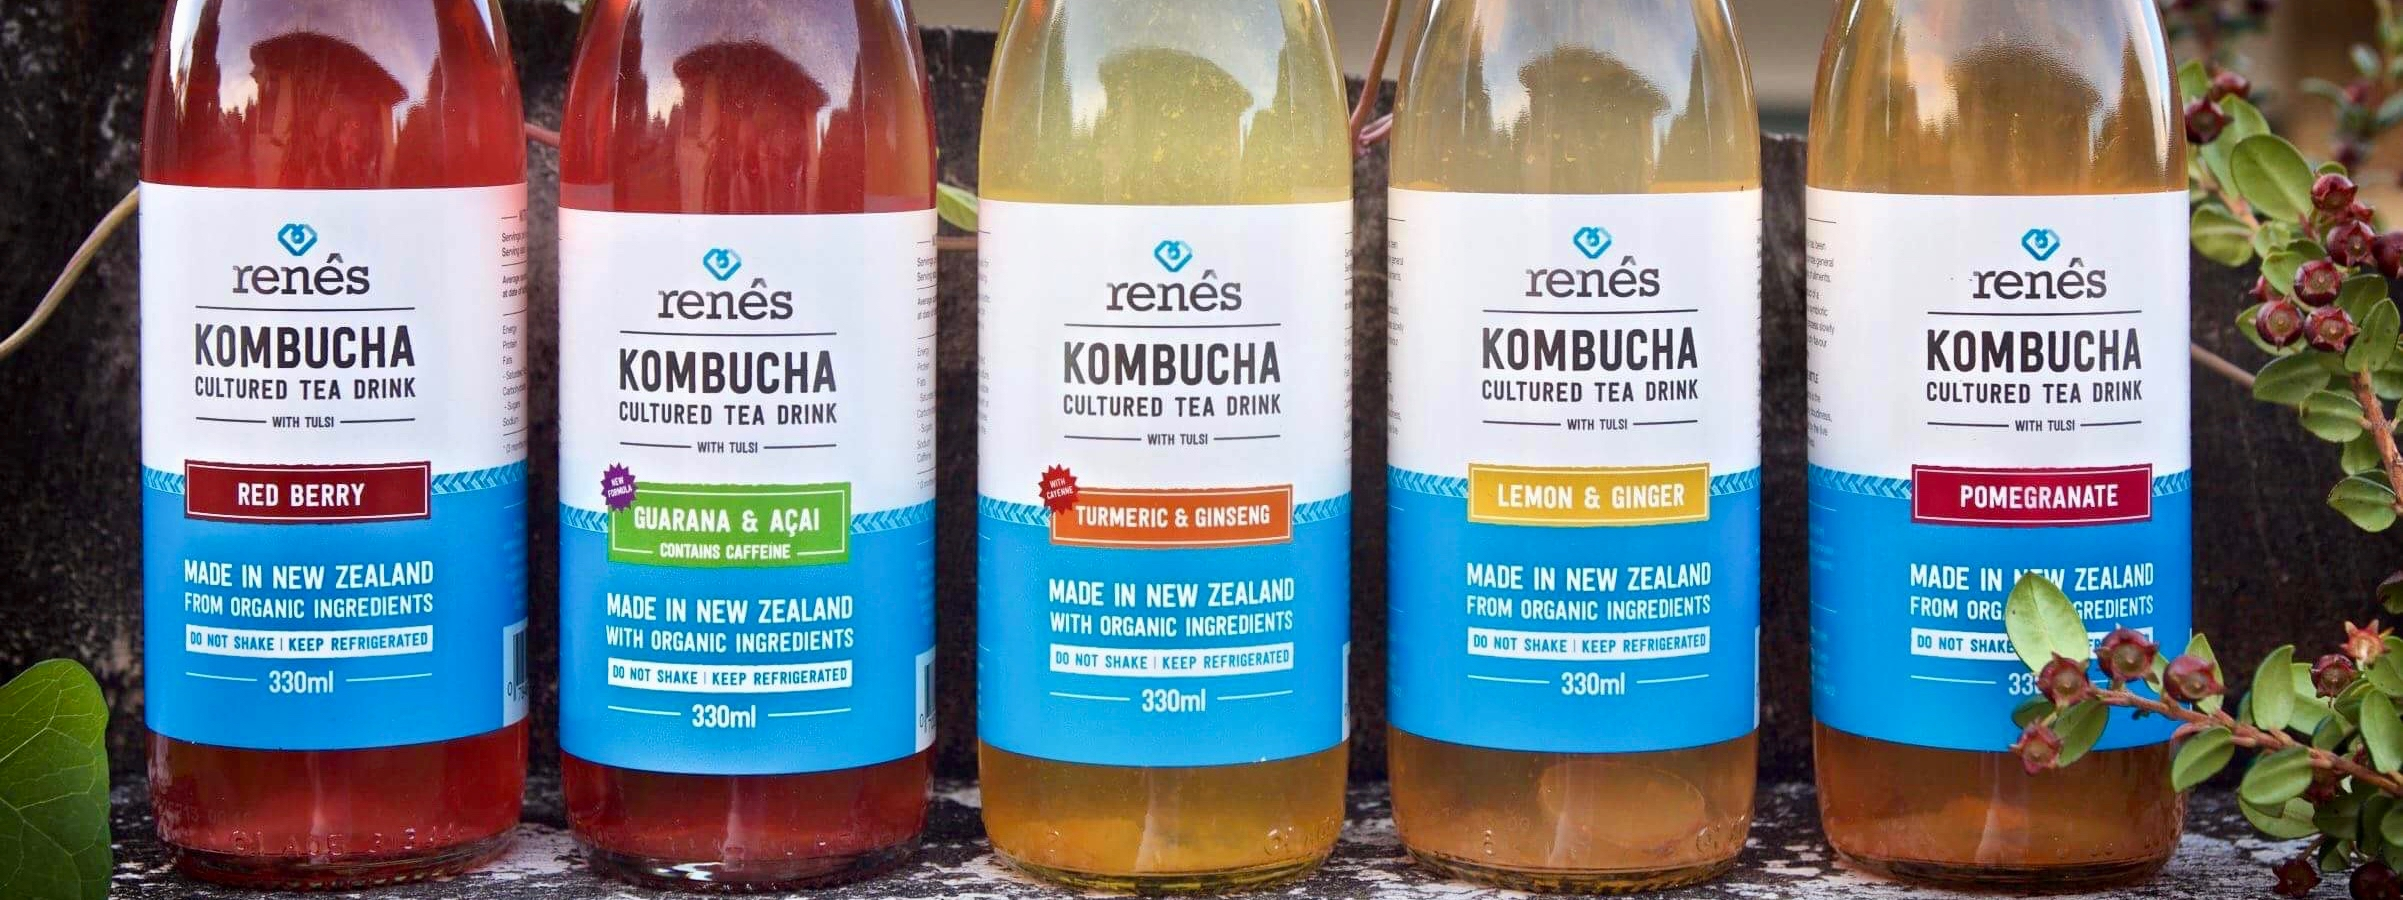 Welcome to the home of true artisan Kombucha!